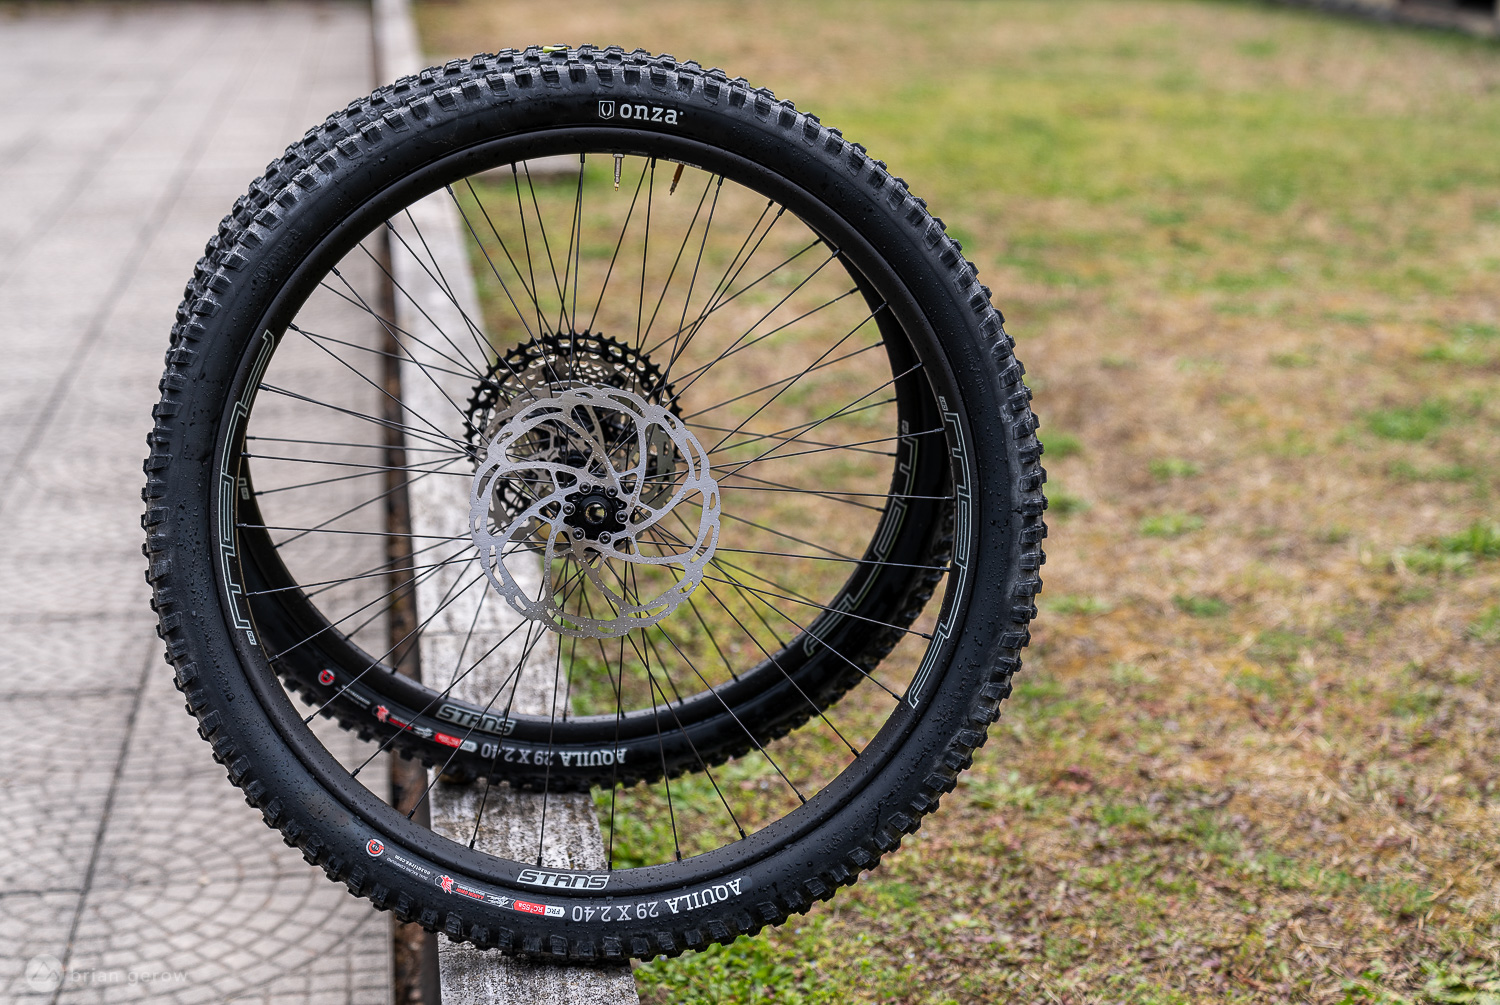 Stans CB7 Wheelset, Onza Aquila Tires, Nukeproof ARD Inserts, and Tyre Yogurt Sealant in for Test - Singletracks Mountain Bike News